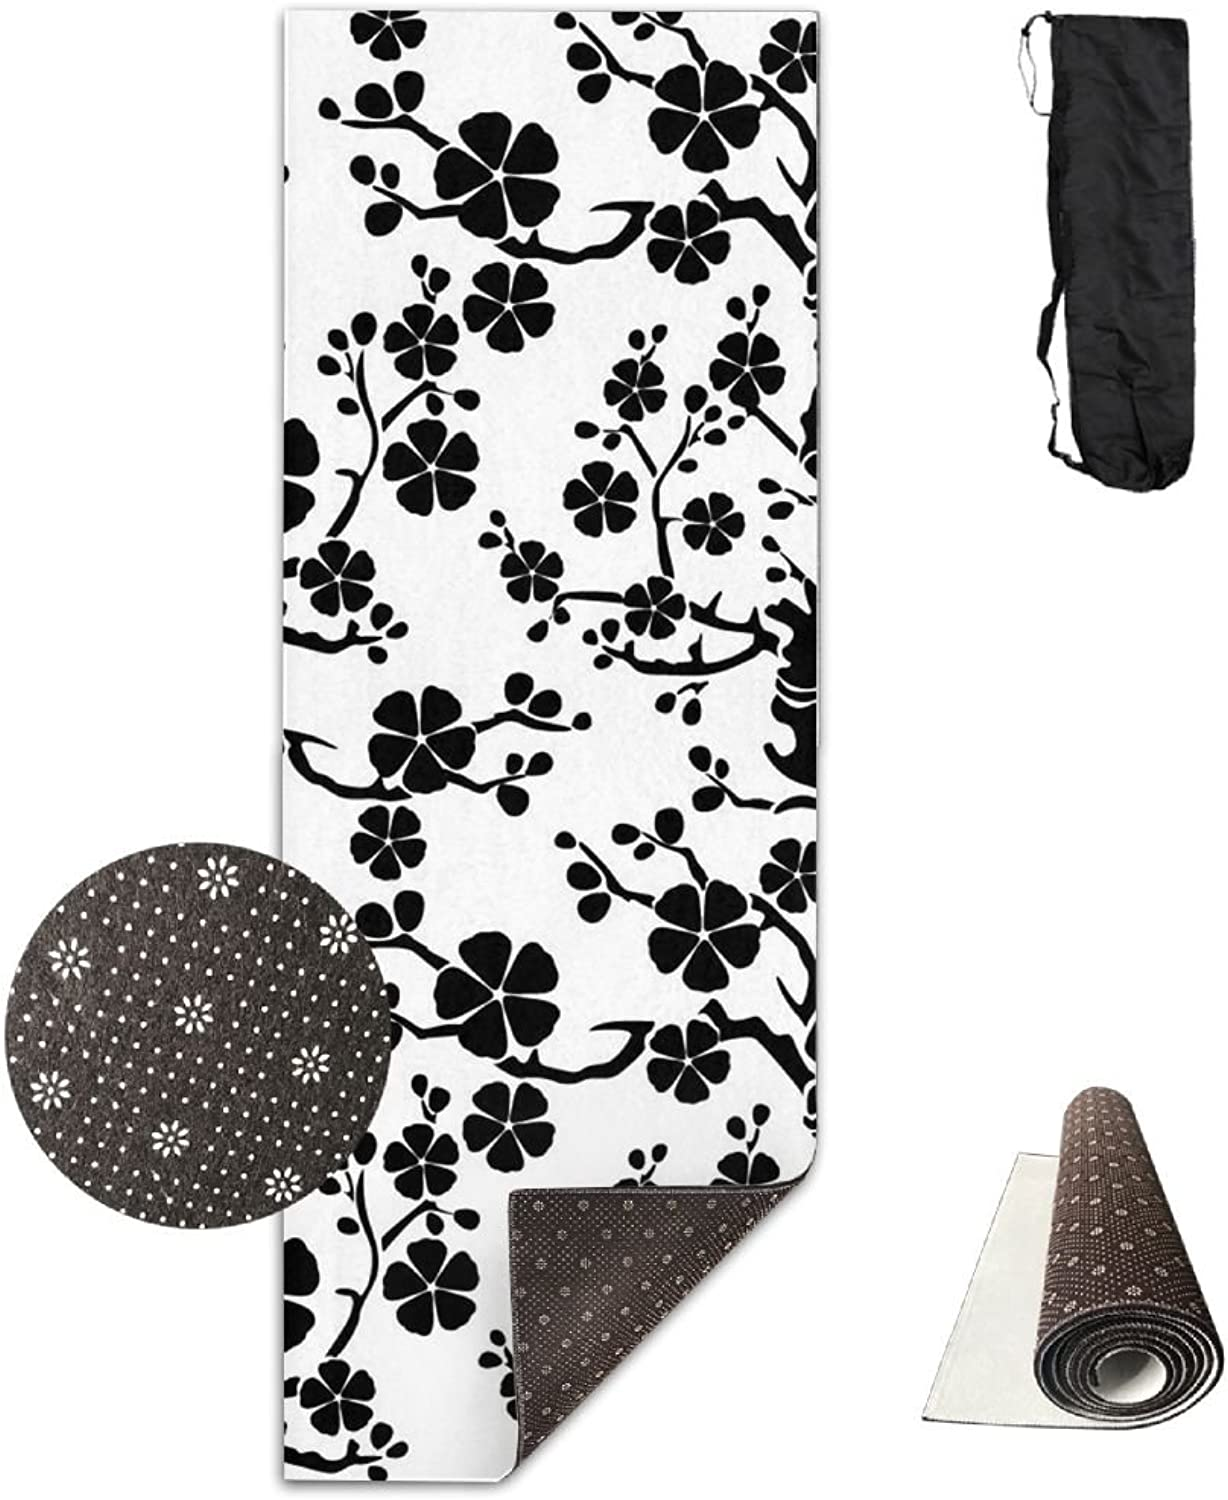 ZSQZSQ Unisex Non Slip Comfort Washable Black Cherry Blossoms Yoga Mat,Pilates & Fitness Exercise Mats with Carrying Strap,Thick High Density Mat,for Yoga,Pilates,Exercise and Workouts